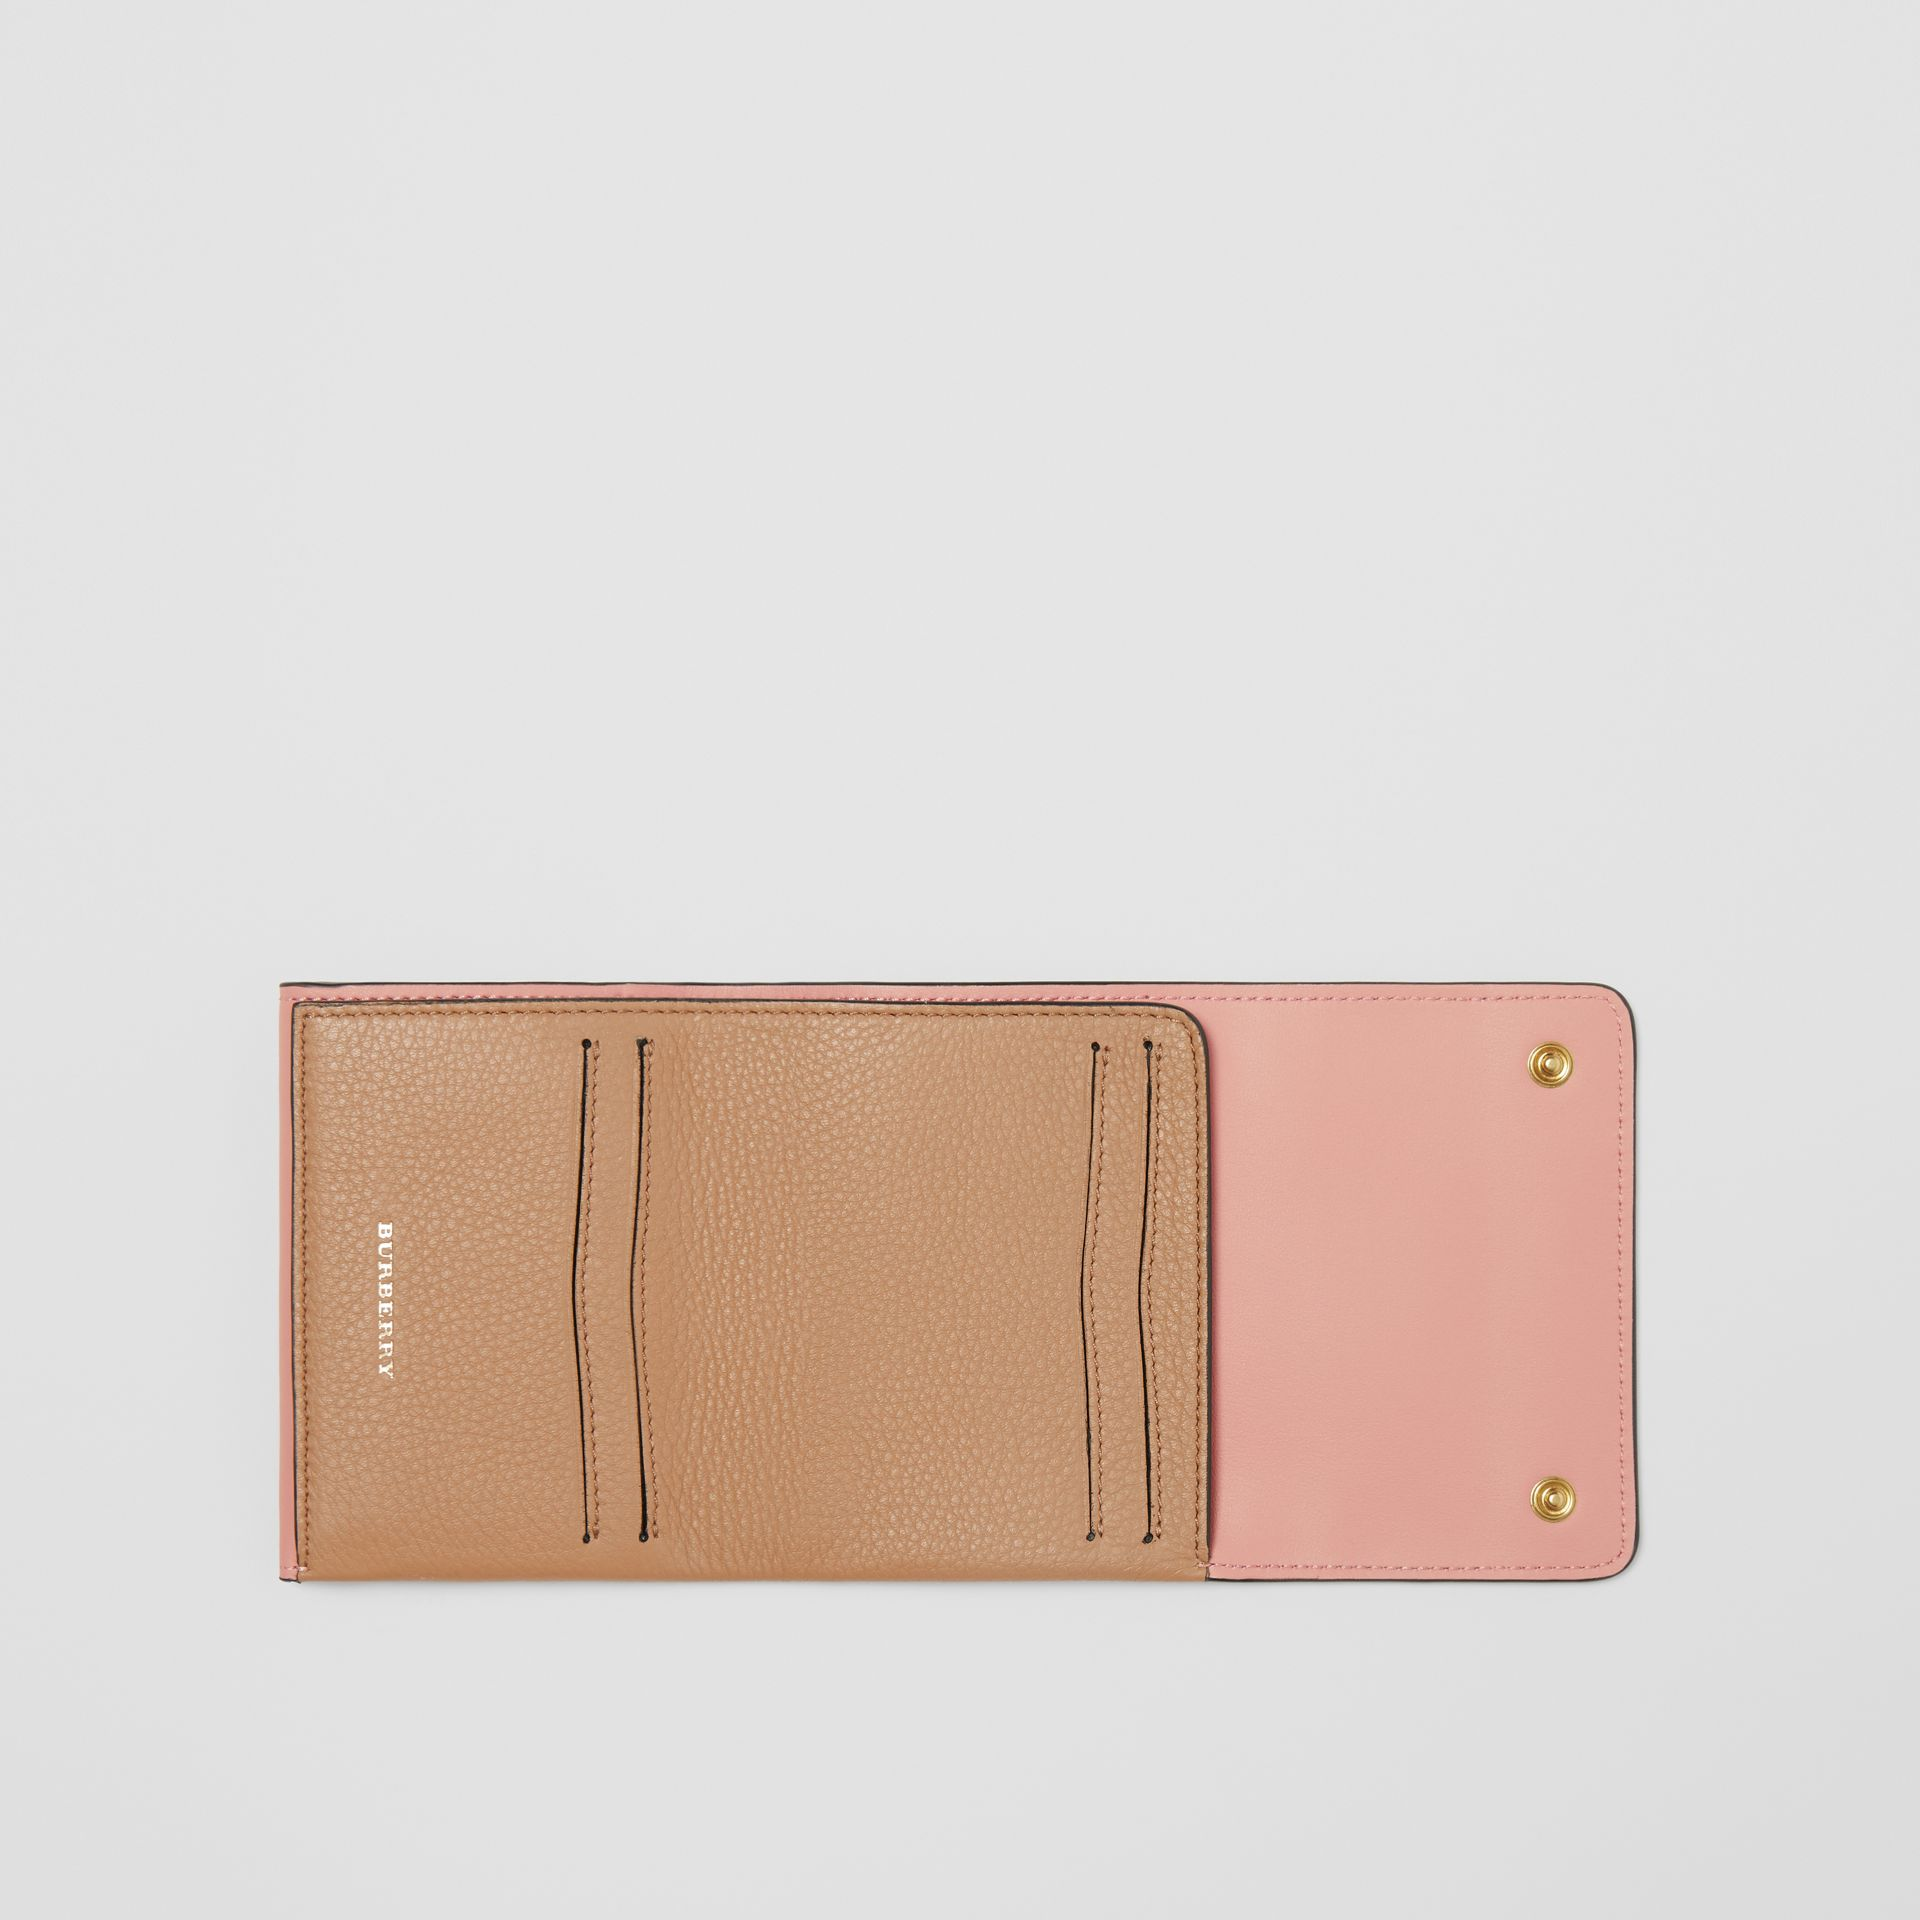 Small Leather Folding Wallet in Light Camel - Women | Burberry Singapore - gallery image 3